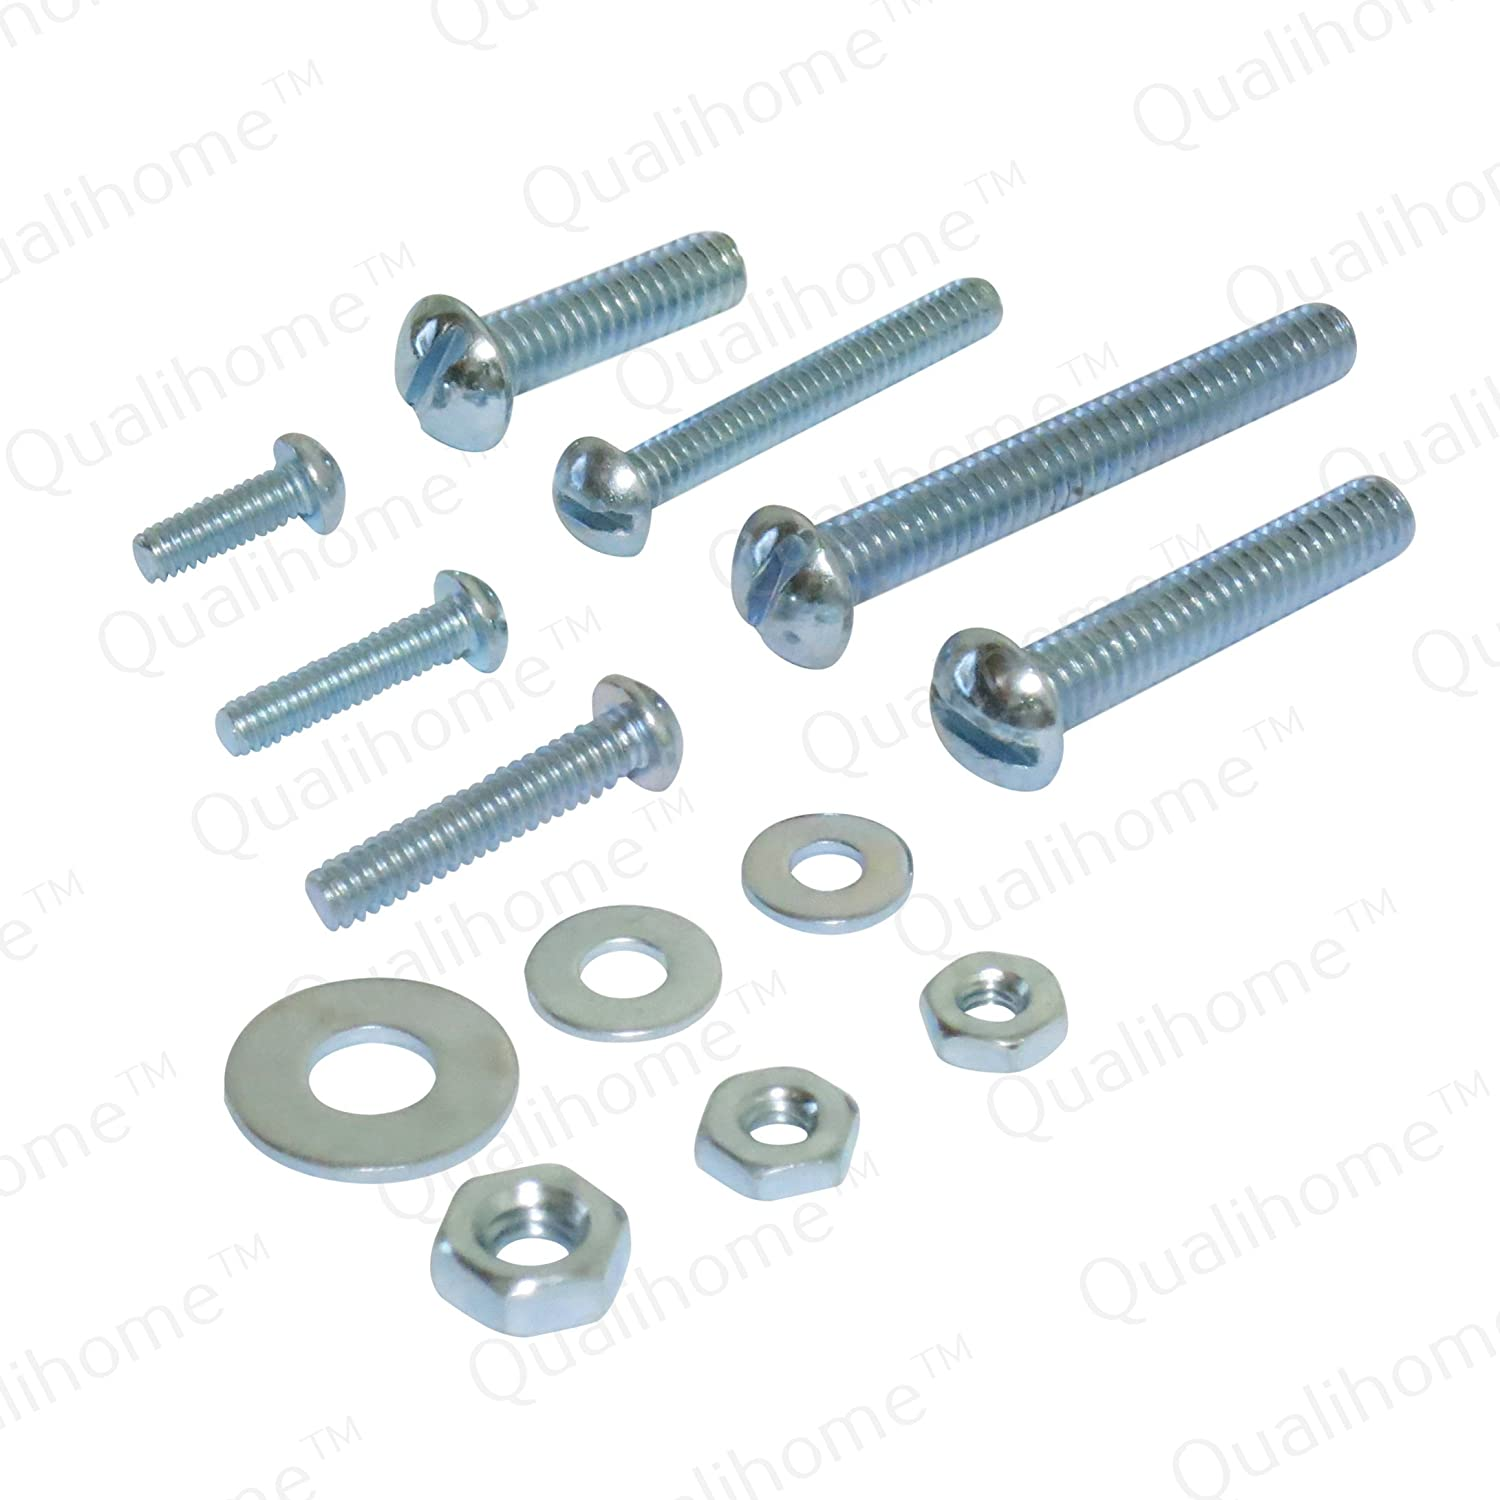 108 Pieces Qualihome Nuts and Washer Assortment Kit Bolts